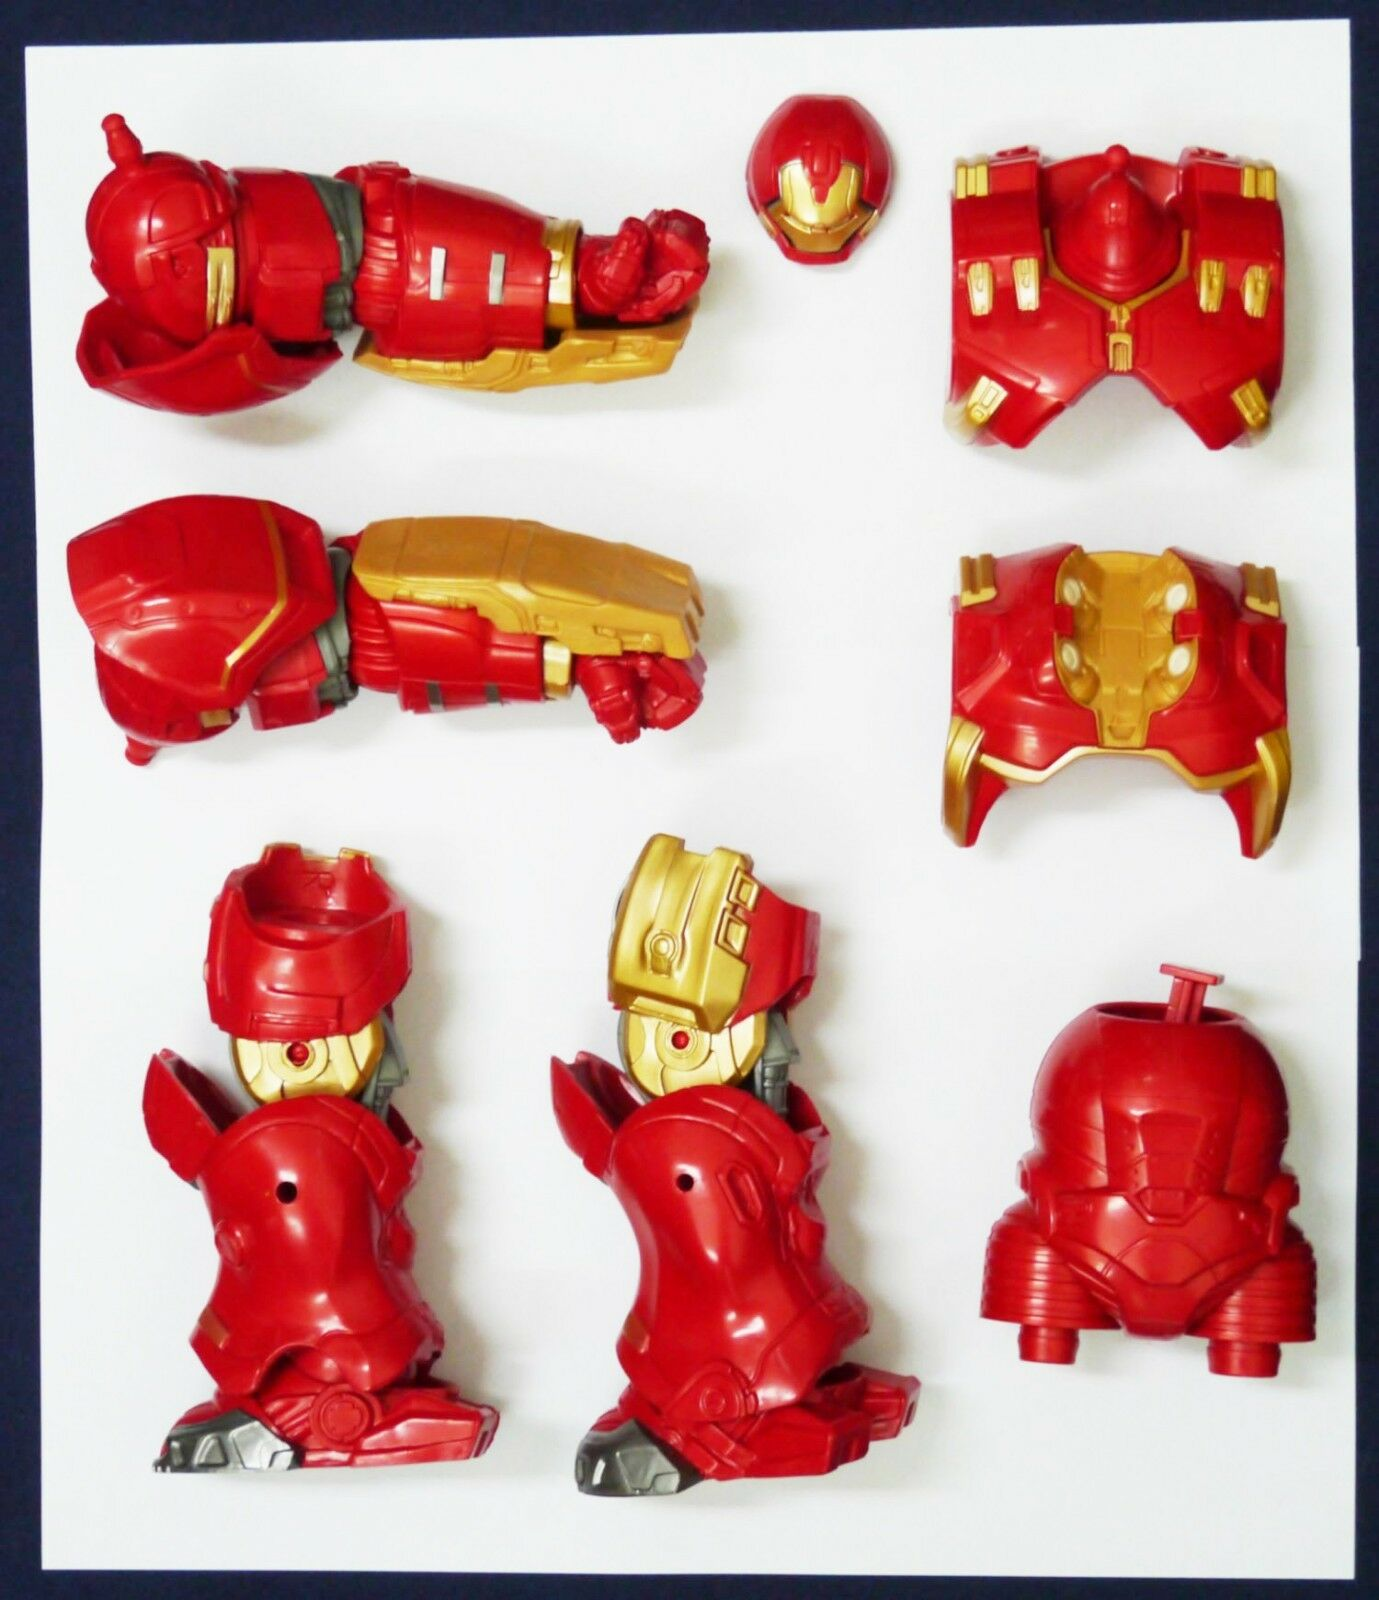 Hulkbuster Marvel Legends BAF Avengers Iron Man Hasbro loose build a figure